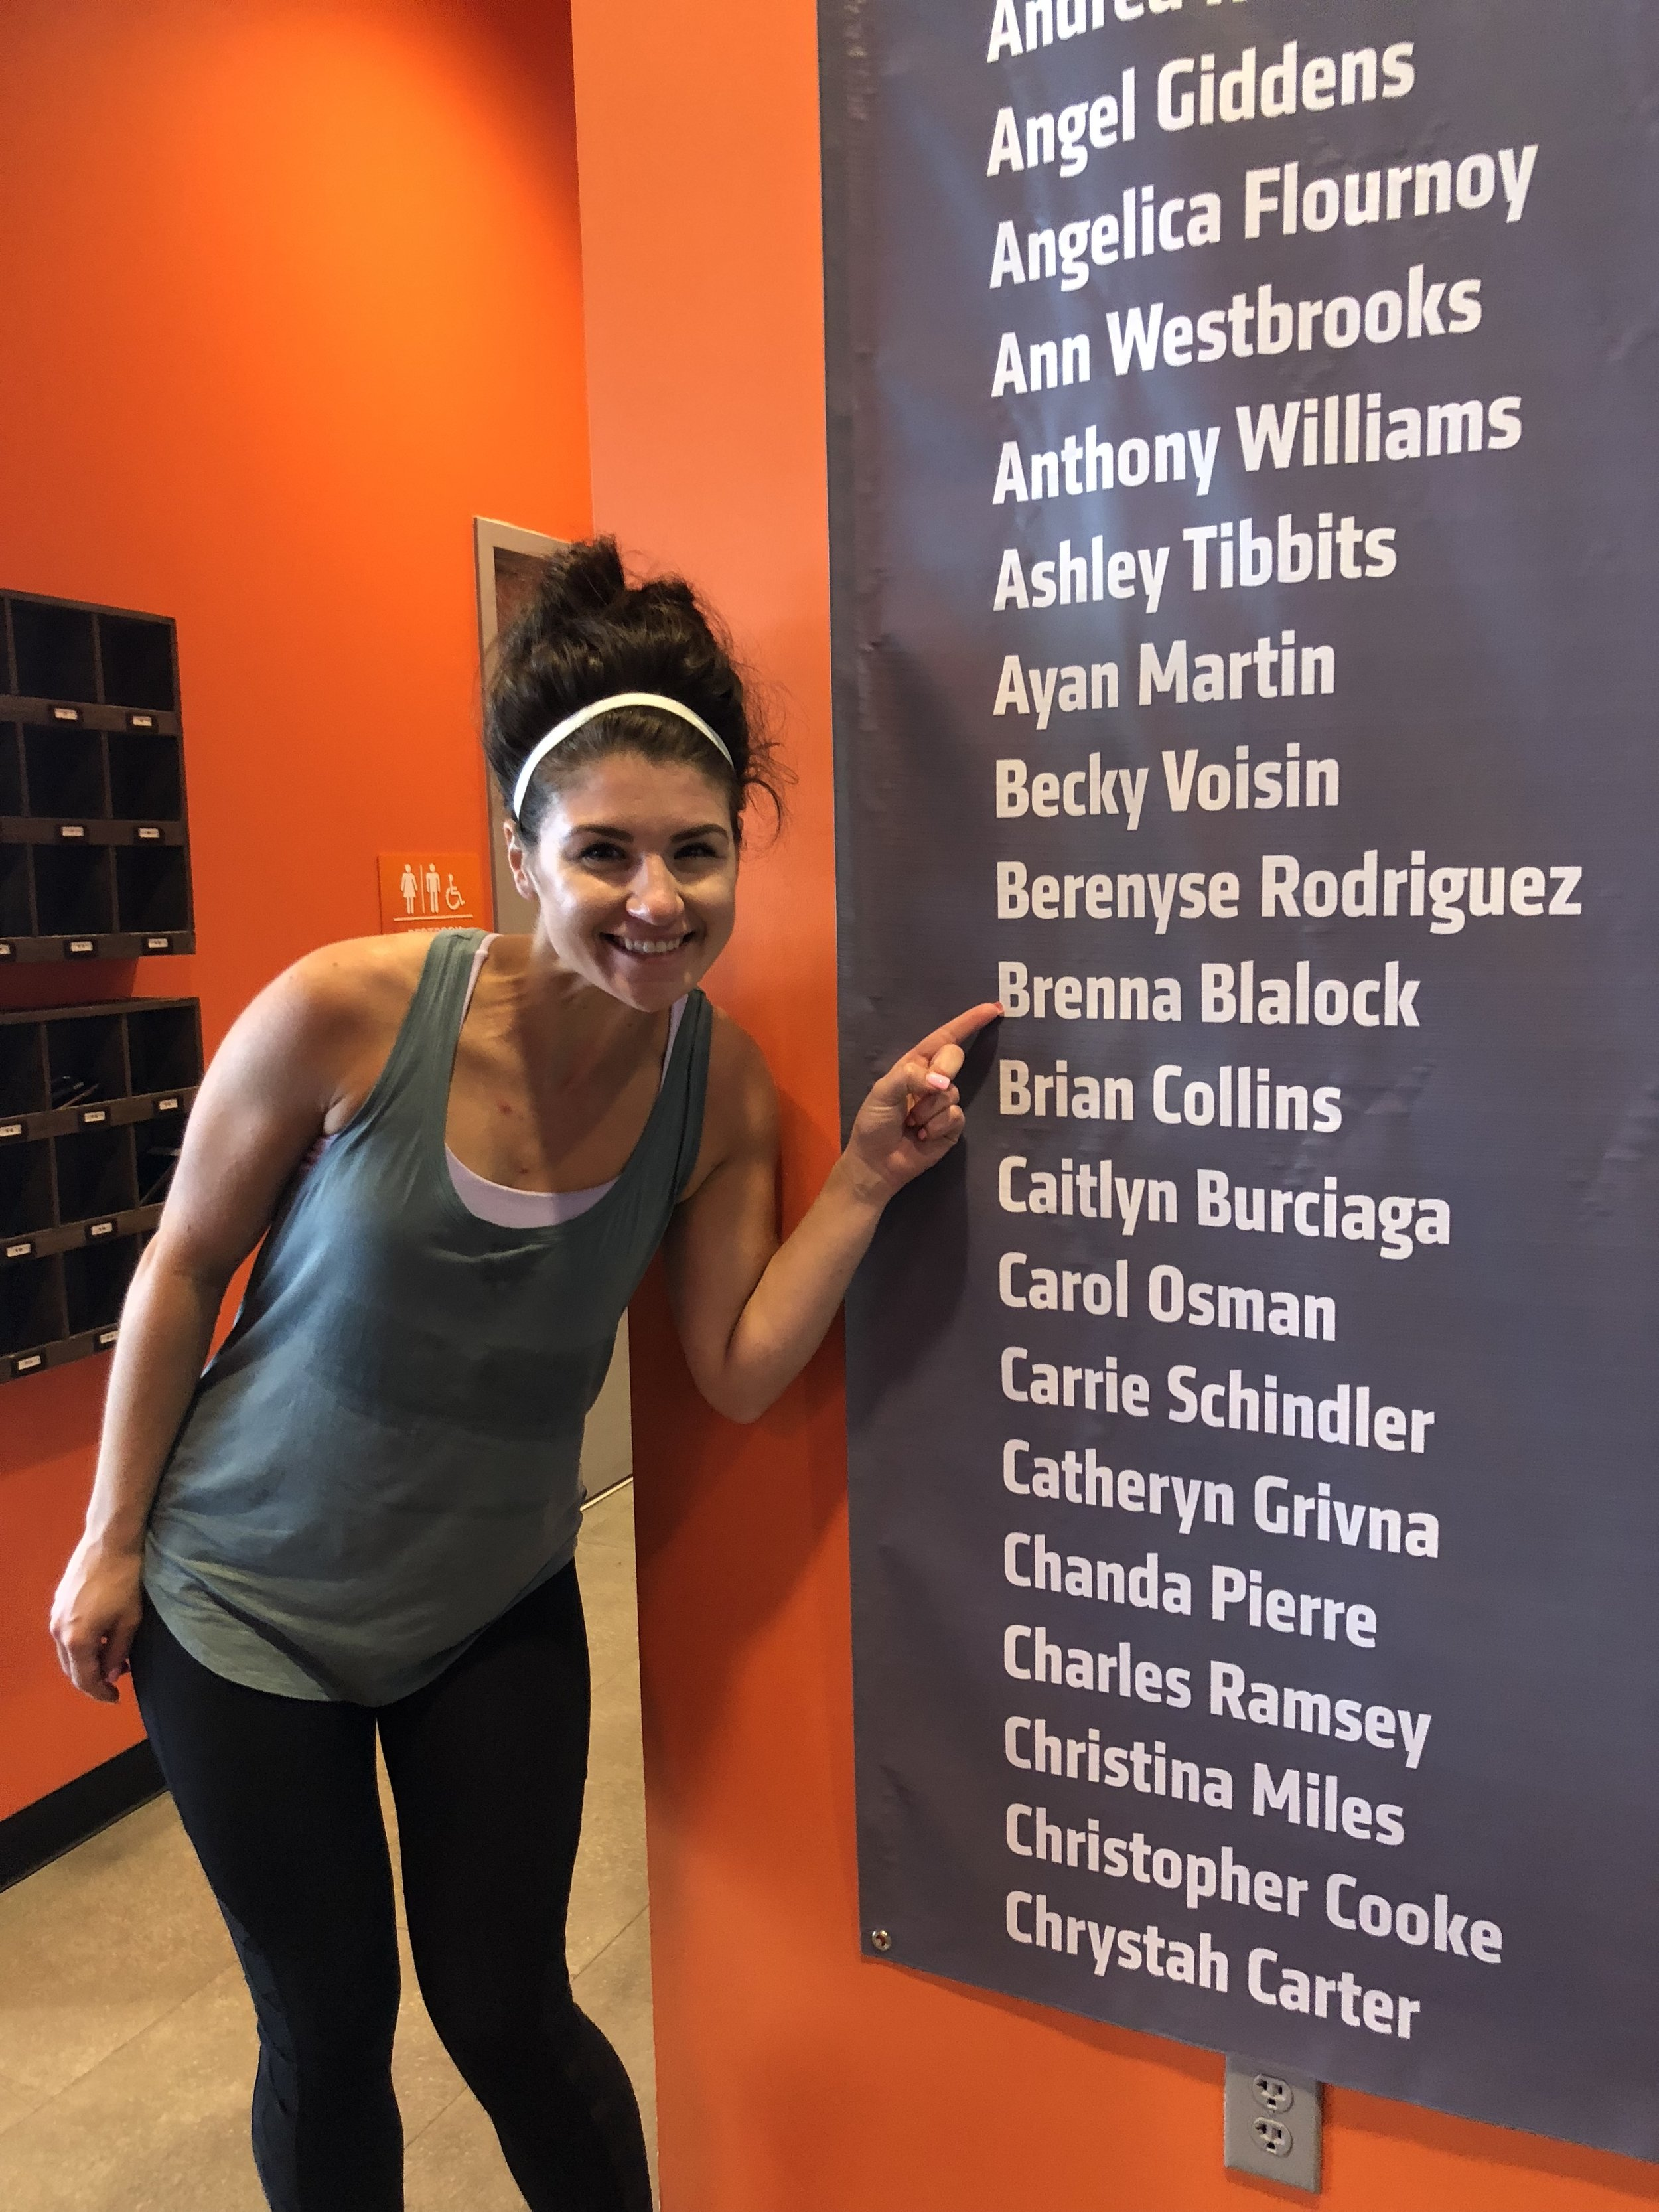 OTF Spring just celebrated their 1st birthday and made a giant banner with everyone who had done 100 classes or more! So cool.